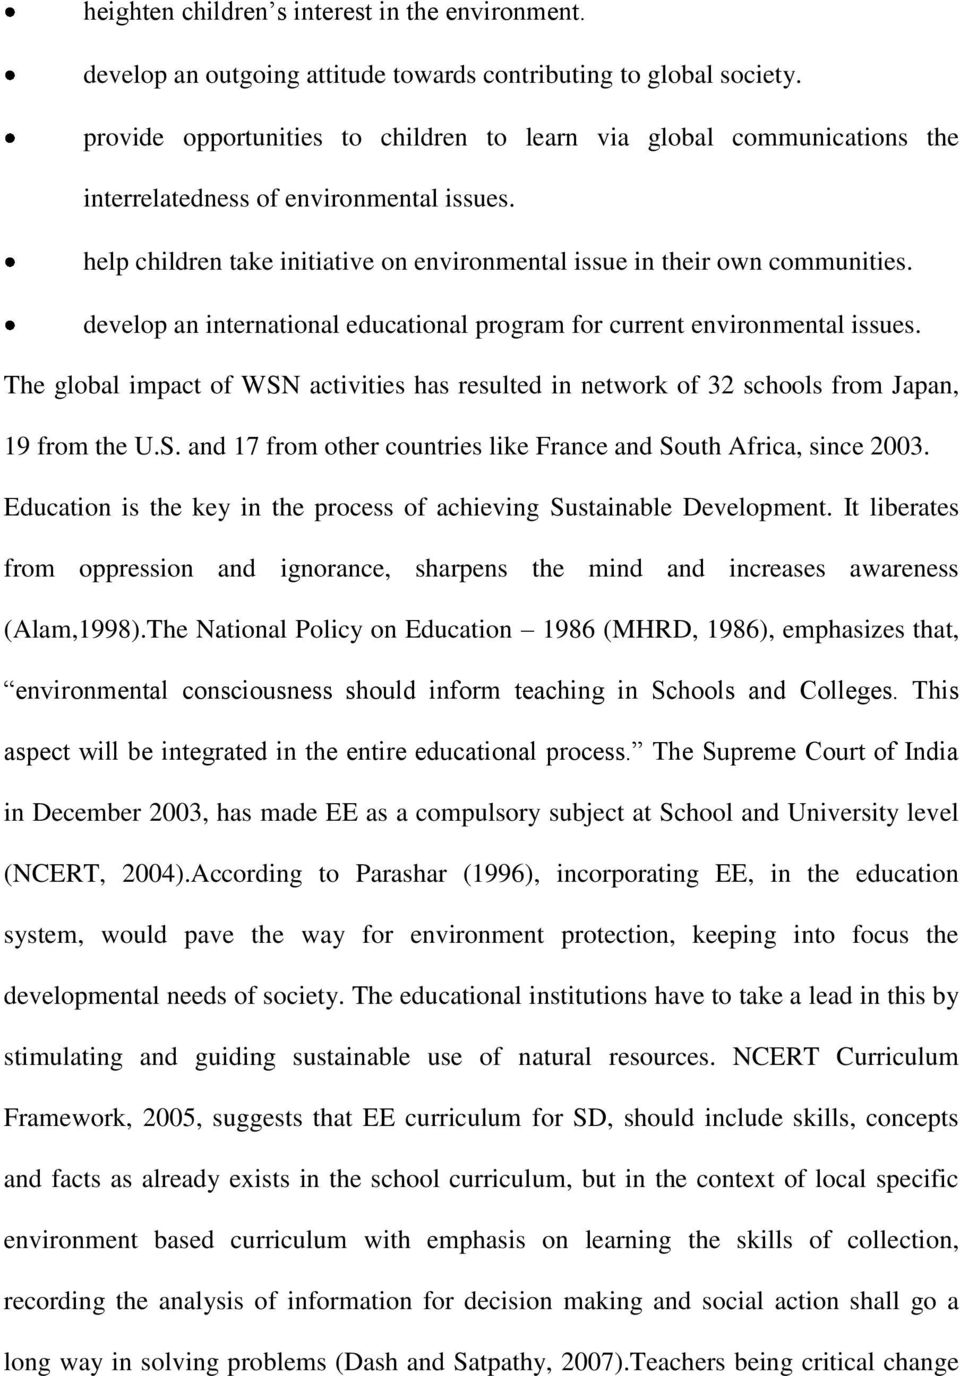 develop an international educational program for current environmental issues. The global impact of WSN activities has resulted in network of 32 schools from Japan, 19 from the U.S. and 17 from other countries like France and South Africa, since 2003.